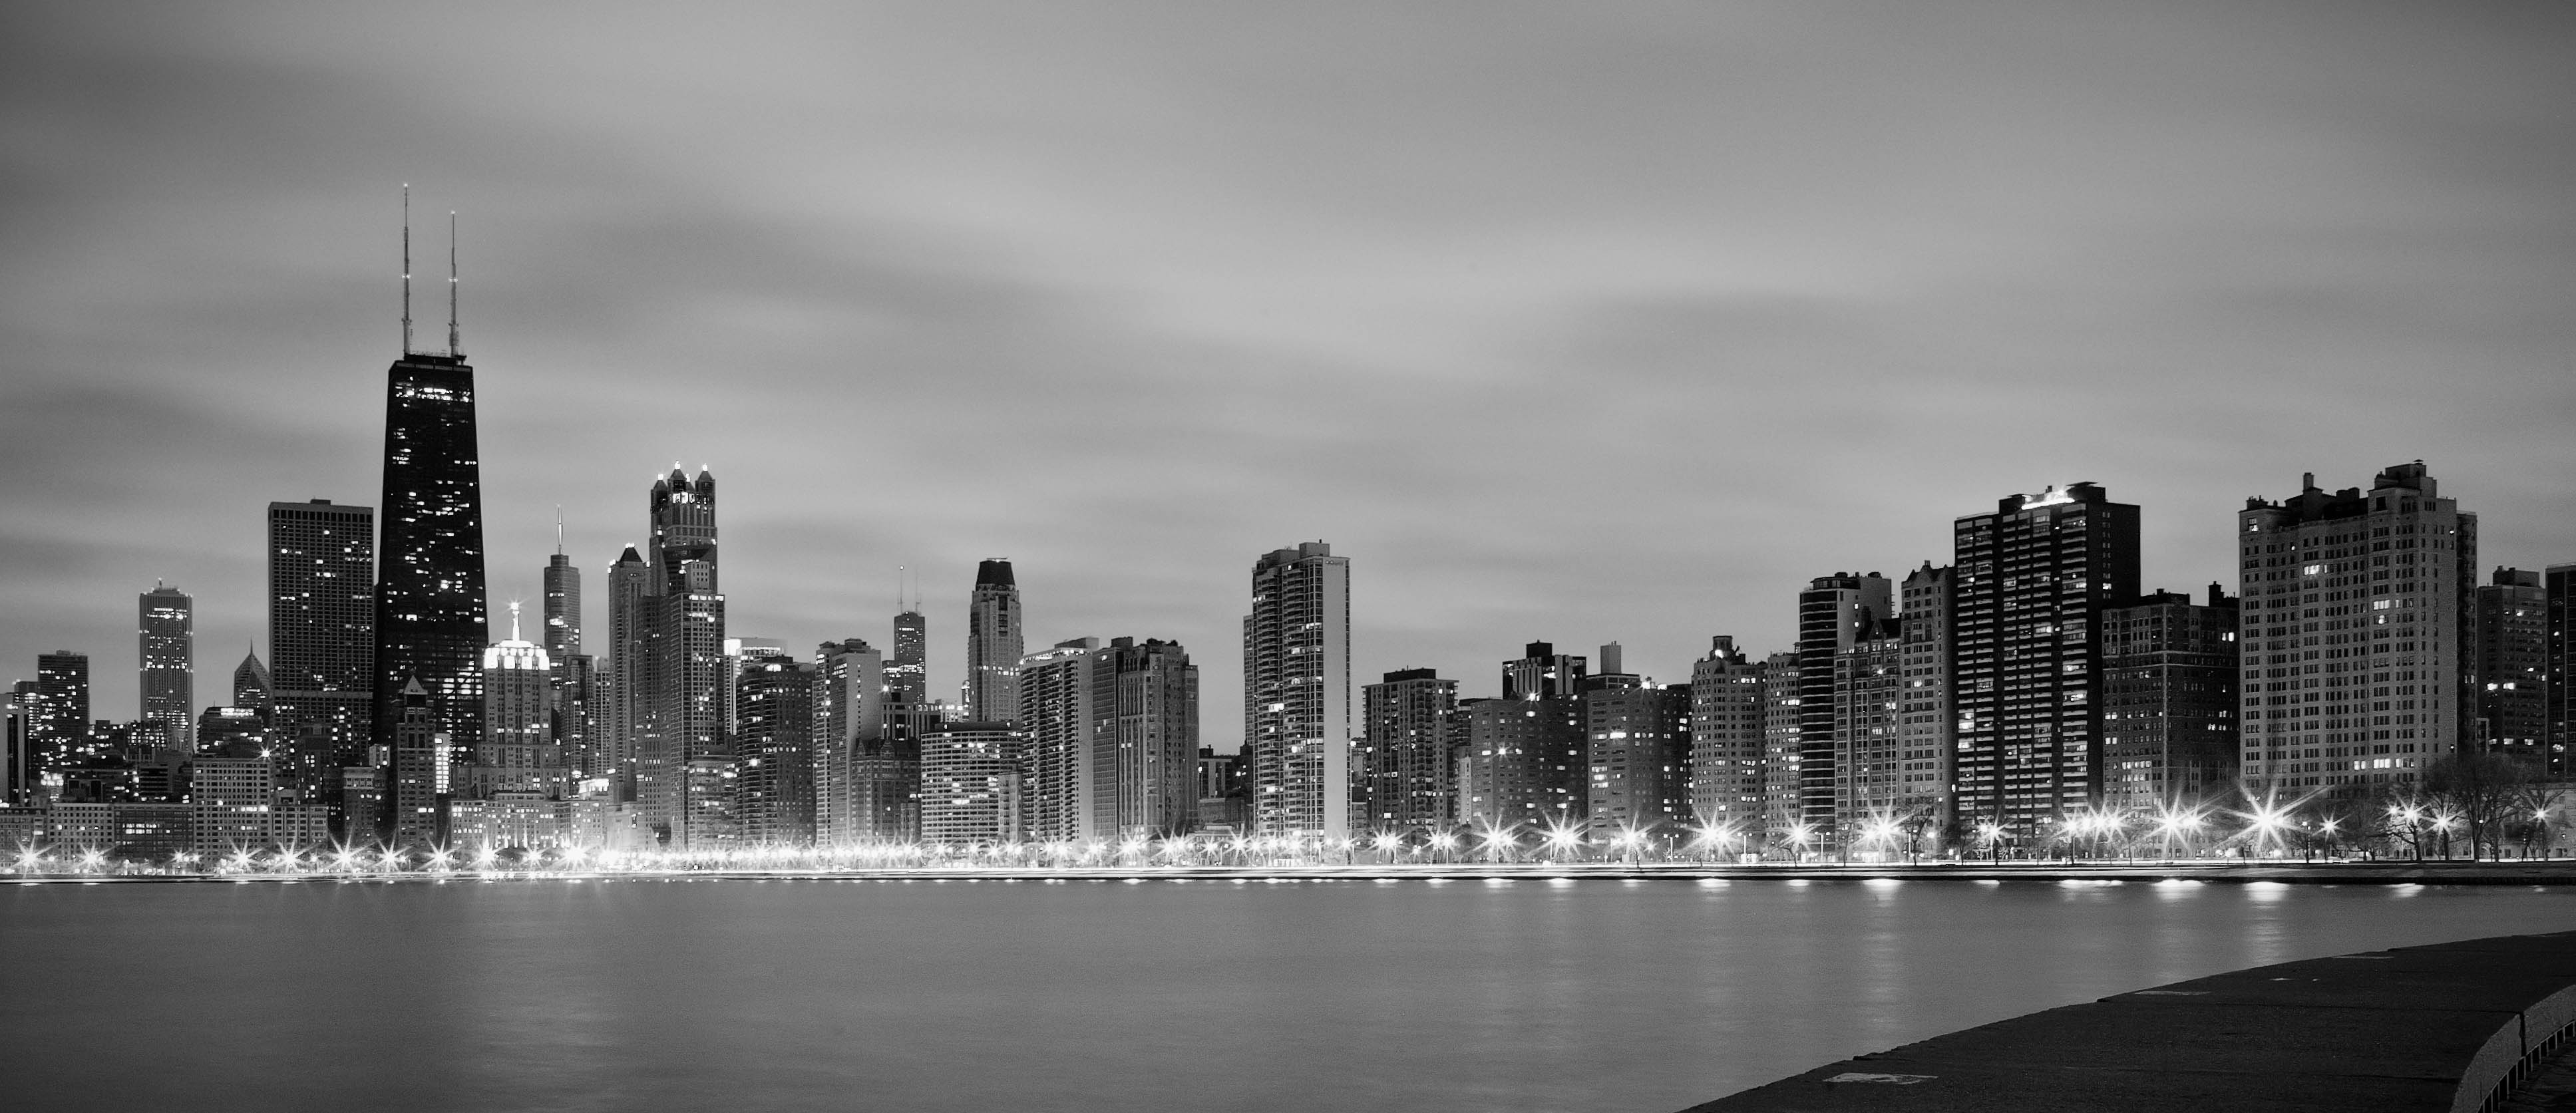 Chicago Skyline Wallpapers Top Free Chicago Skyline Backgrounds